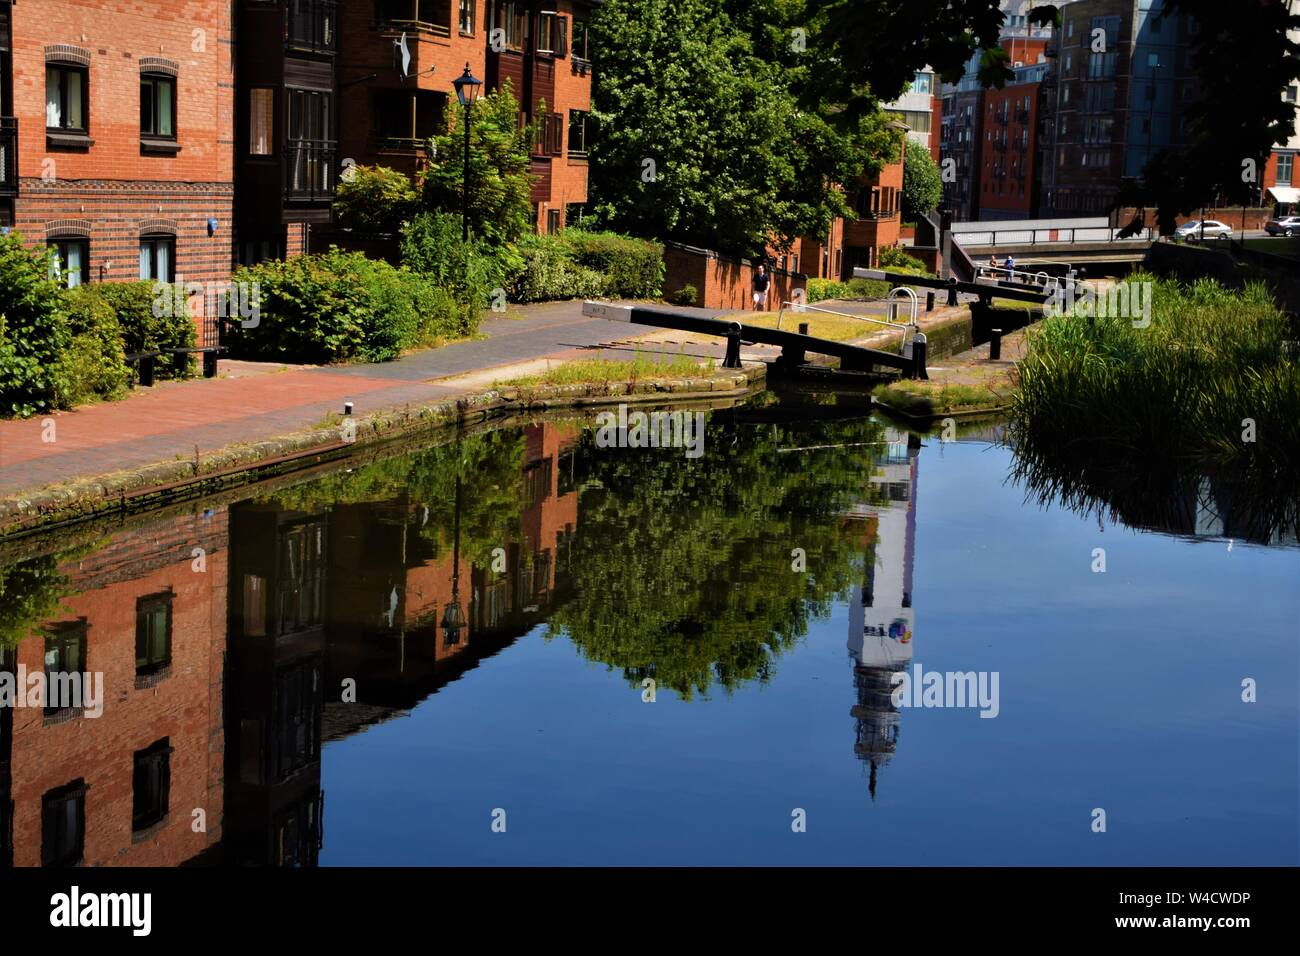 Birmingham canal reflections Stock Photo